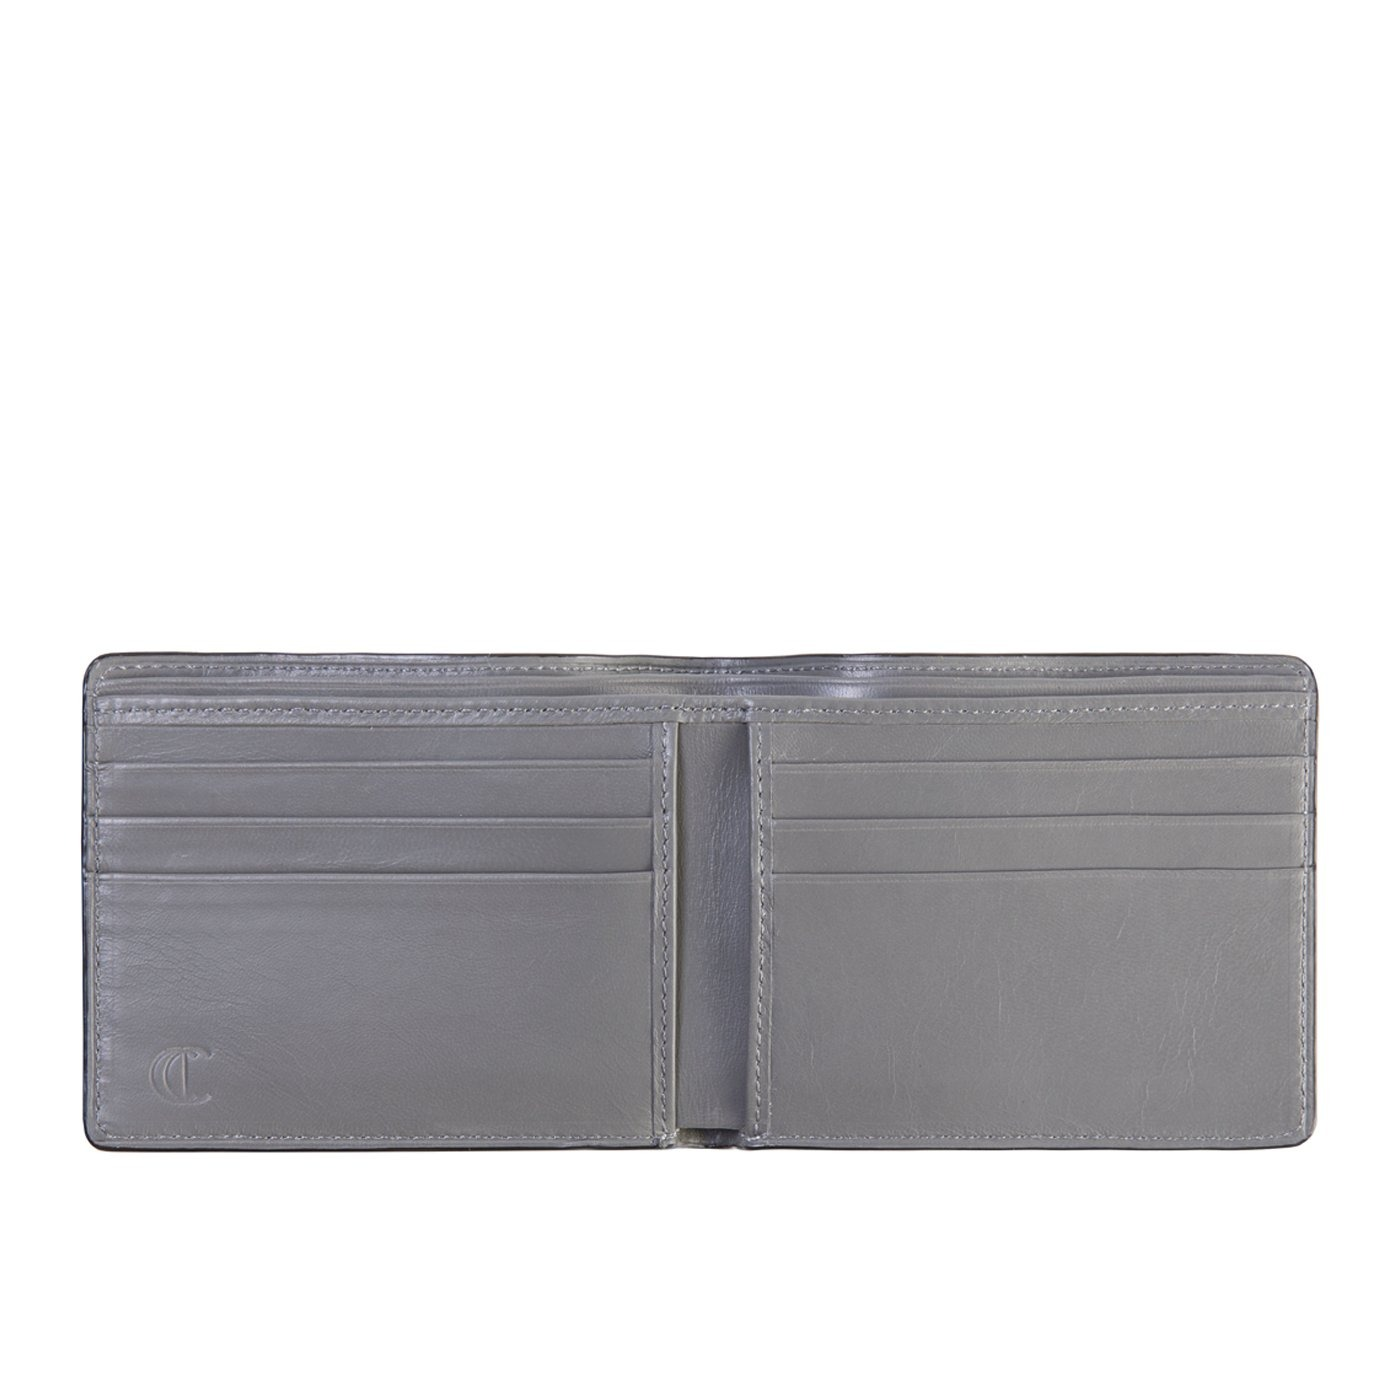 Mens Billfold Wallet 3